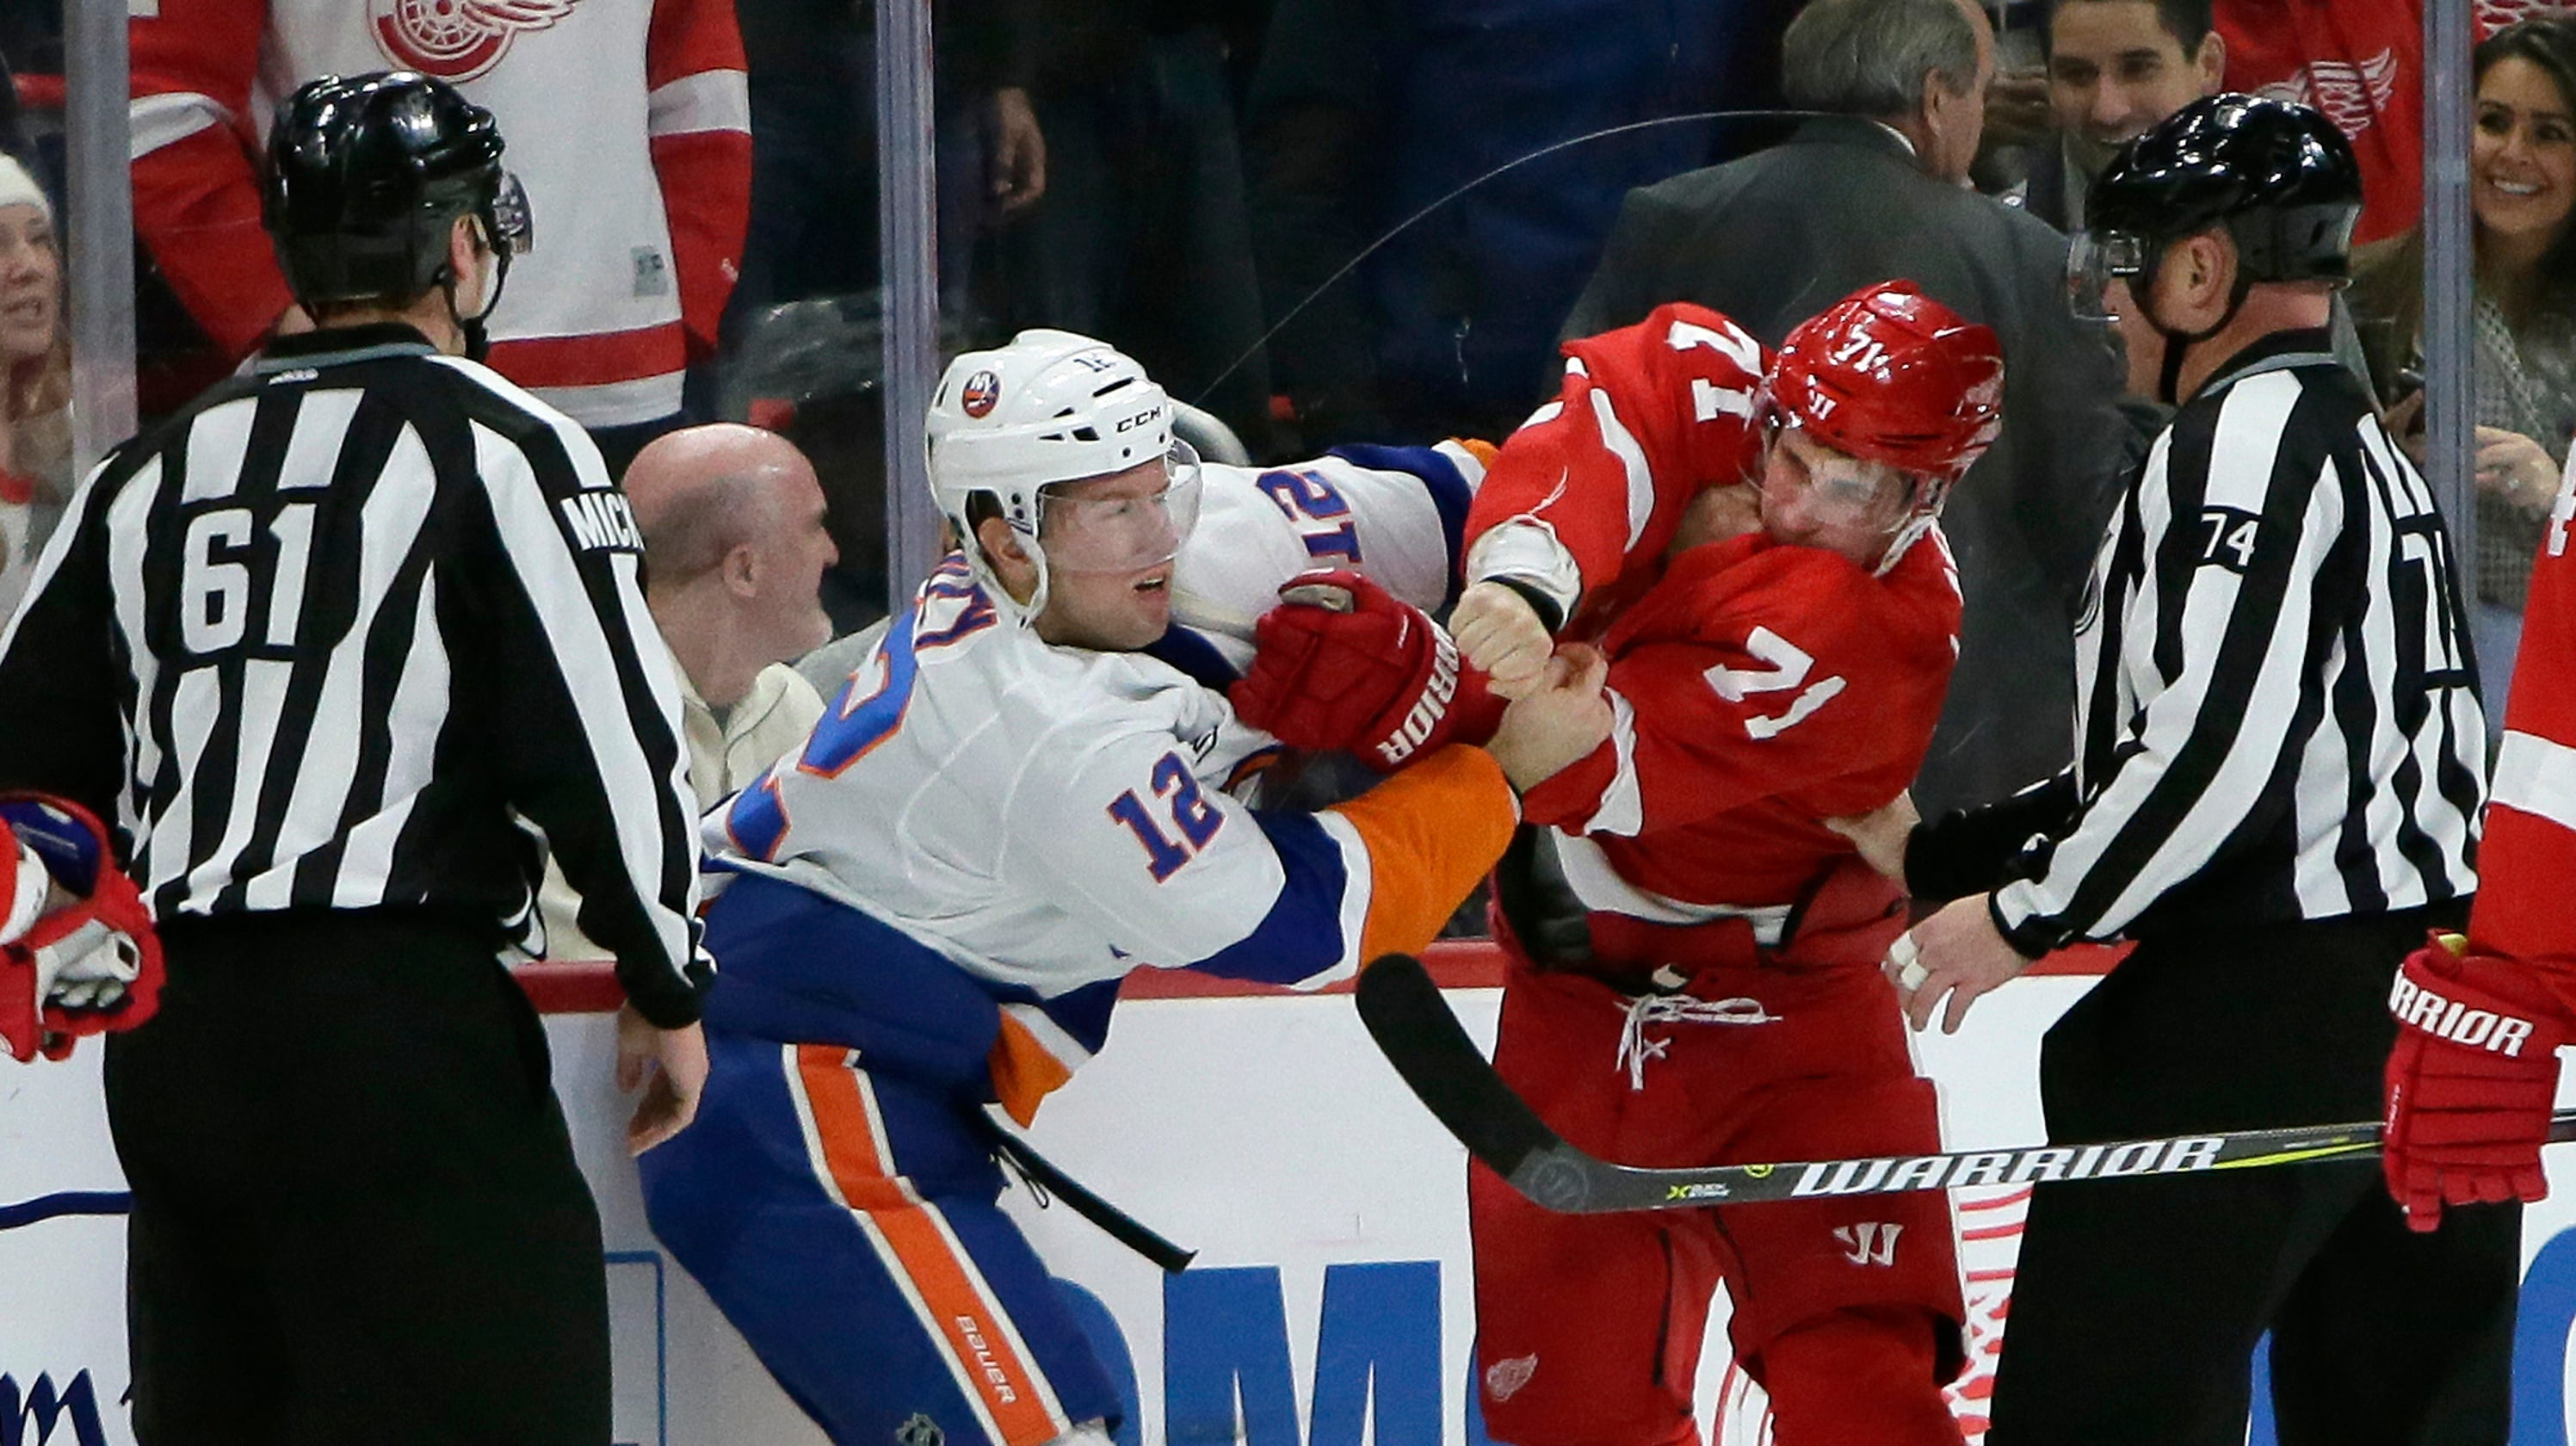 d0ebc85833f Dylan Larkin fighting benefits the Detroit Red Wings. Here s why